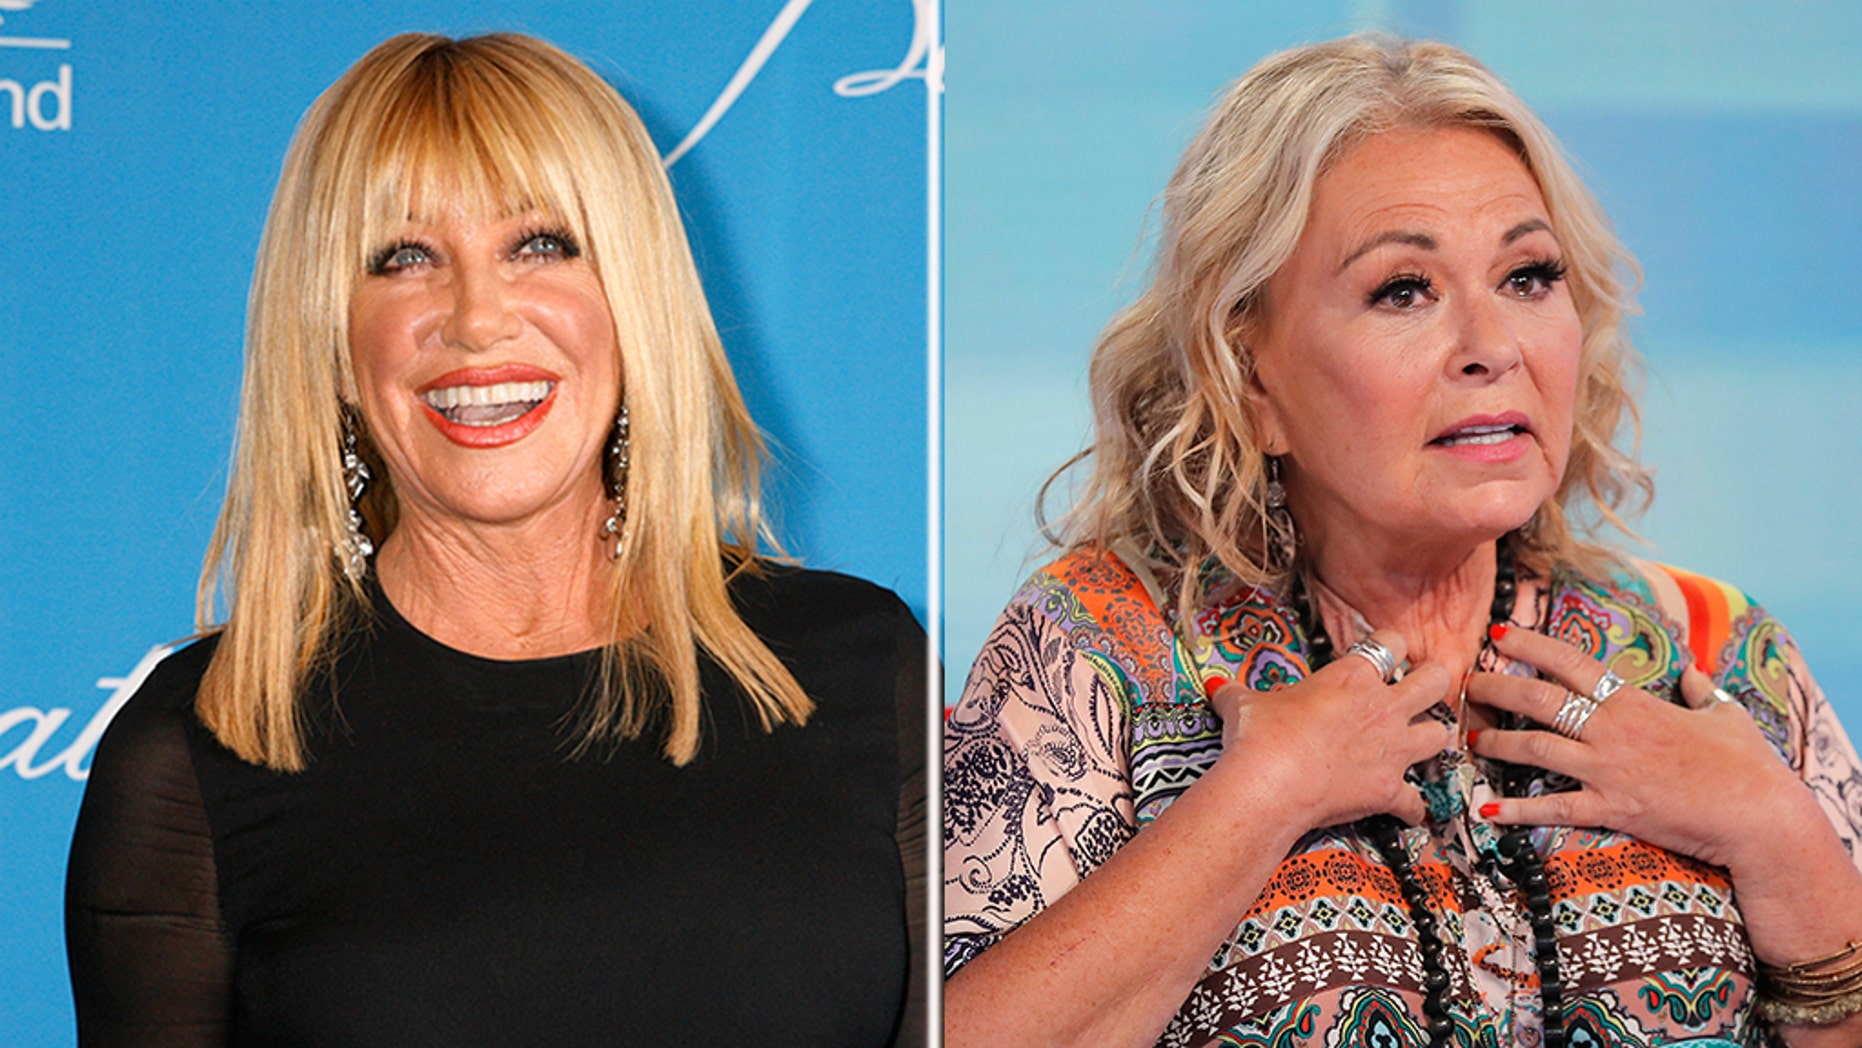 Suzanne Somers is weighing in on Roseanne Barr's firing from ABC in a new interview with Yahoo Entertainment published on Tuesday.